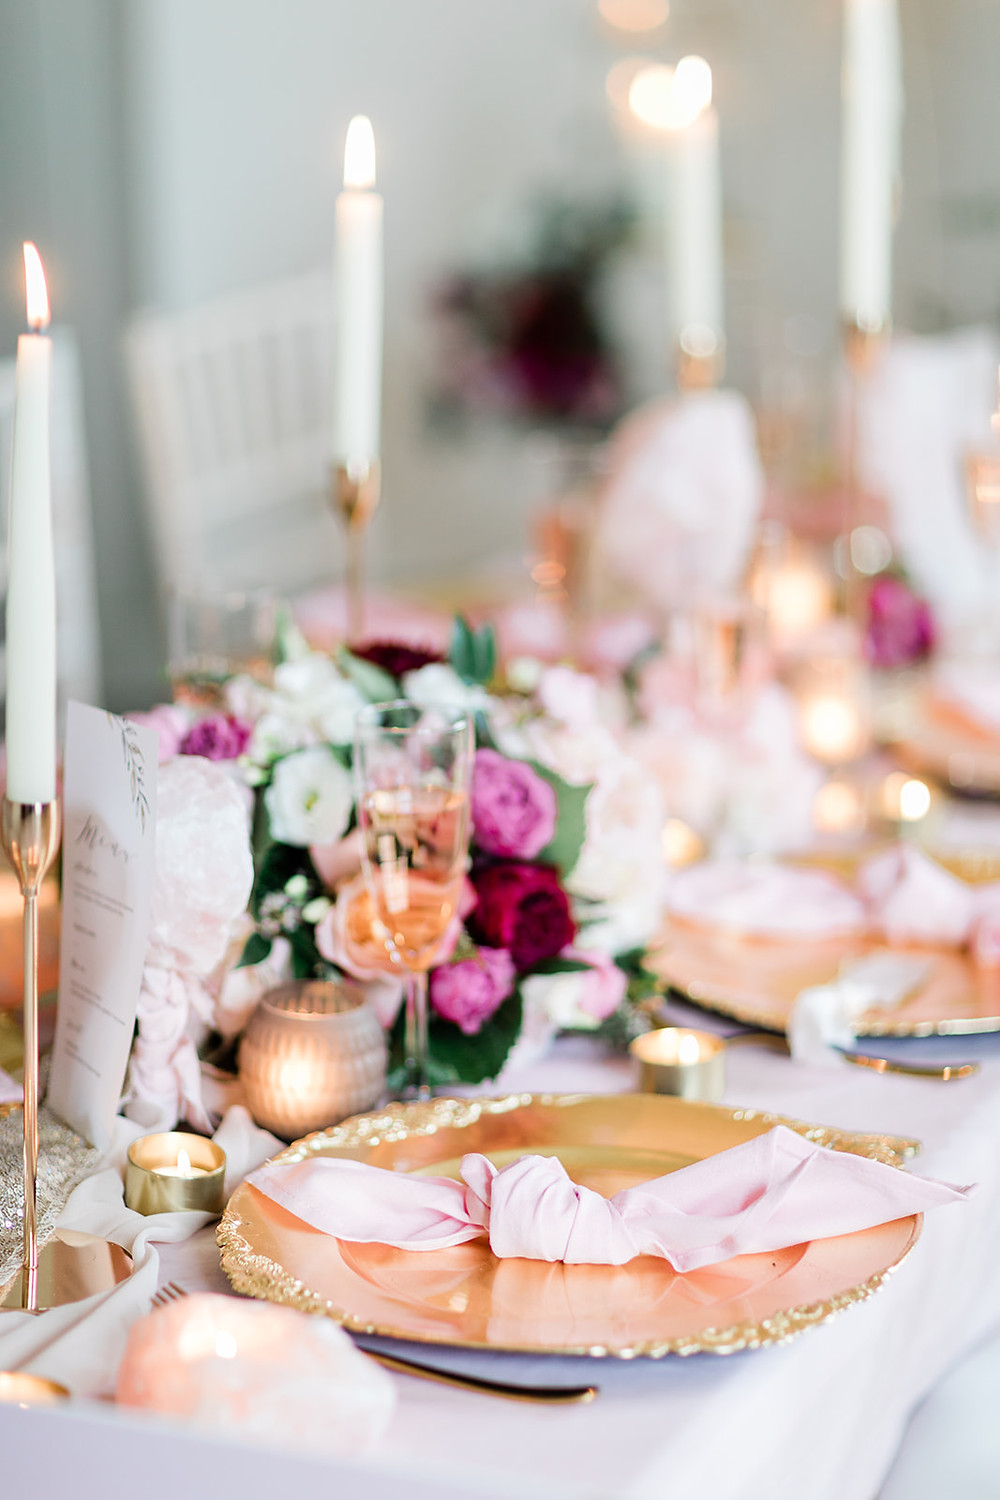 Table Beautifully decorated for a wedding meal with flowers, centrepieces, props in gold and pink. Capheaton Hall Northumberland